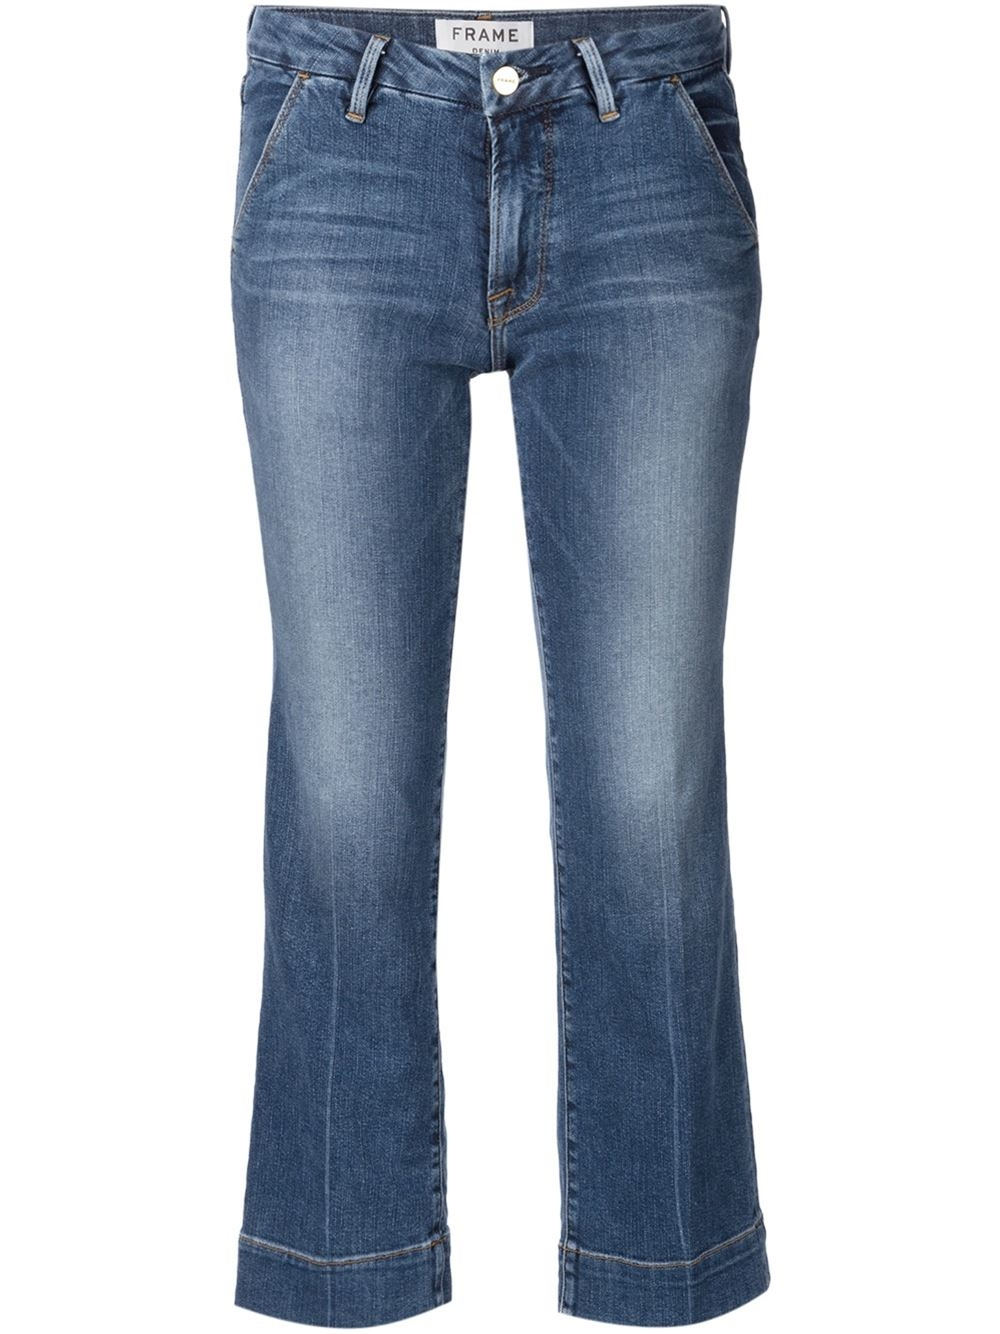 Lyst - FRAME Cropped Jeans in Blue